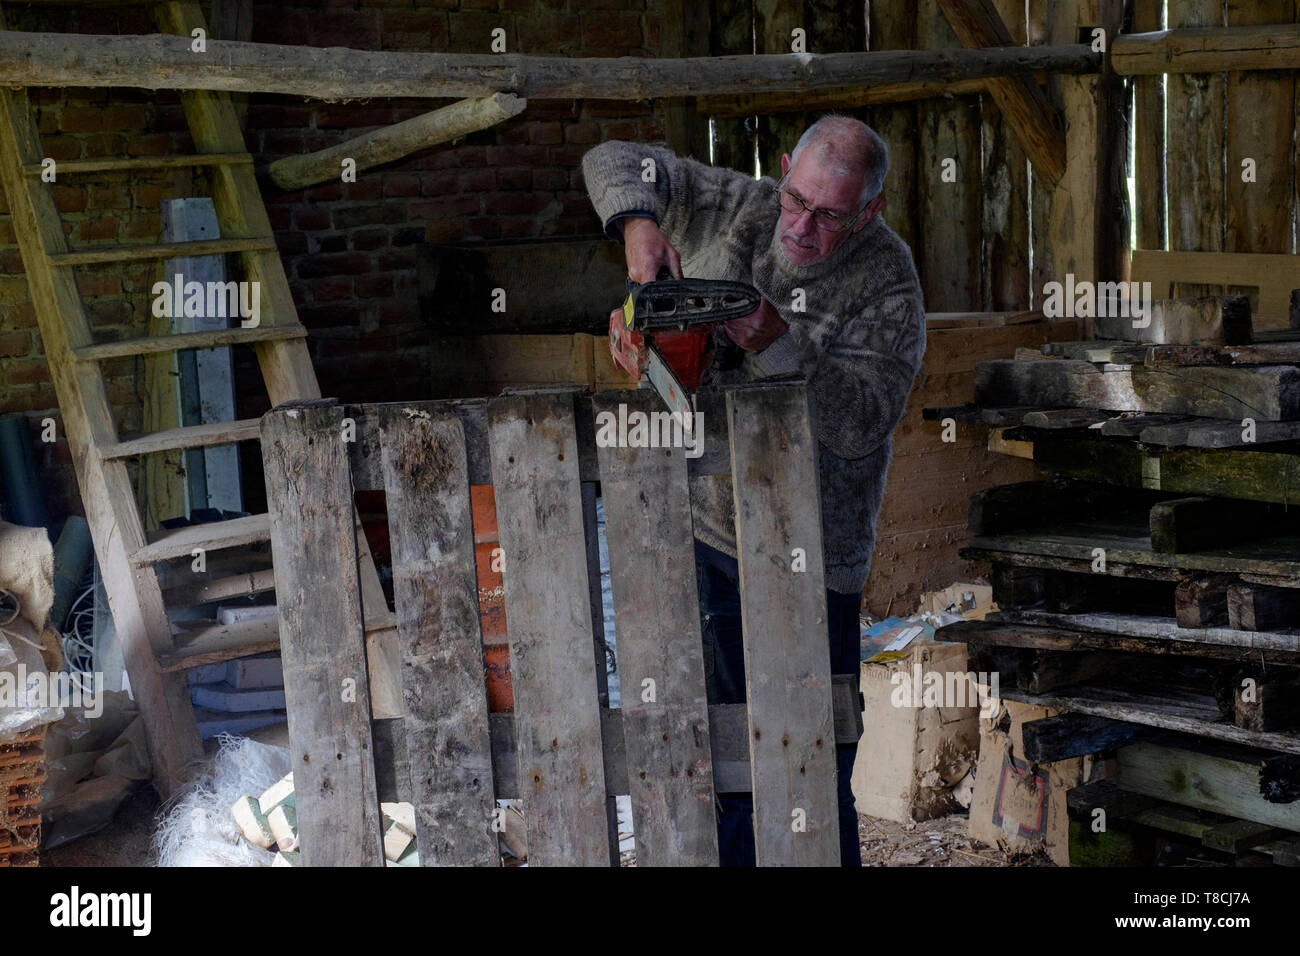 man using a chainsaw in a barn to cut up old wooden pallets for fuel in preparation for the approaching winter season zala county hungary Stock Photo